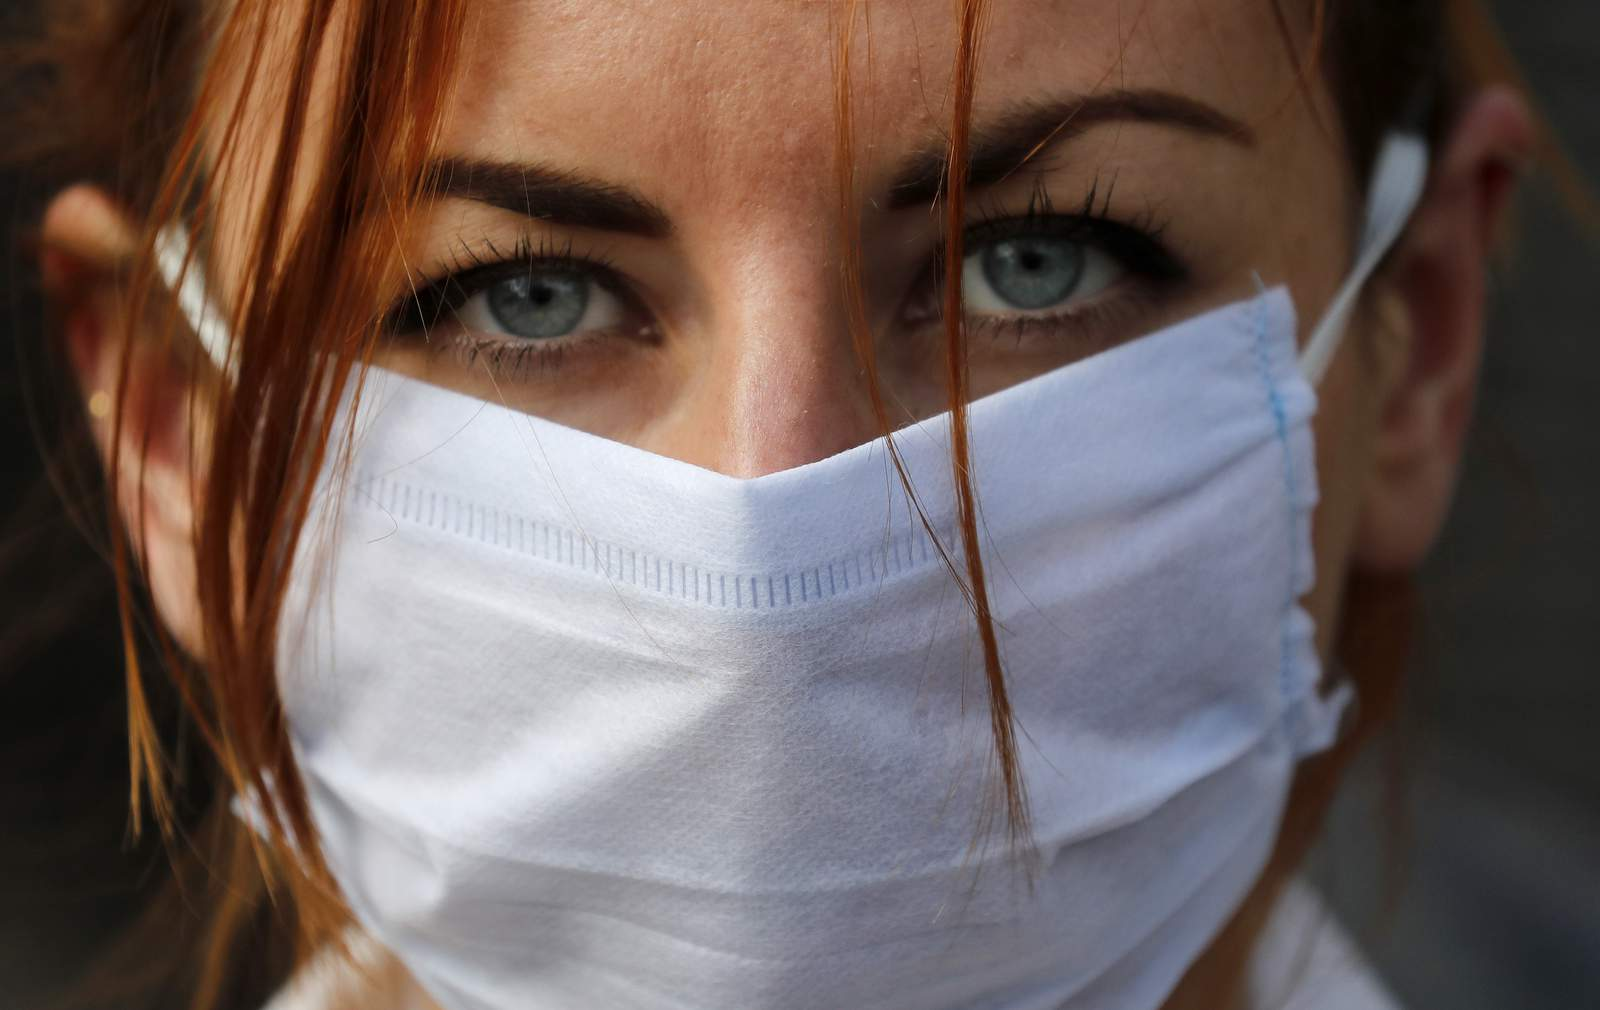 Canadian Red Cross warns of a fraudulent offer of face masks